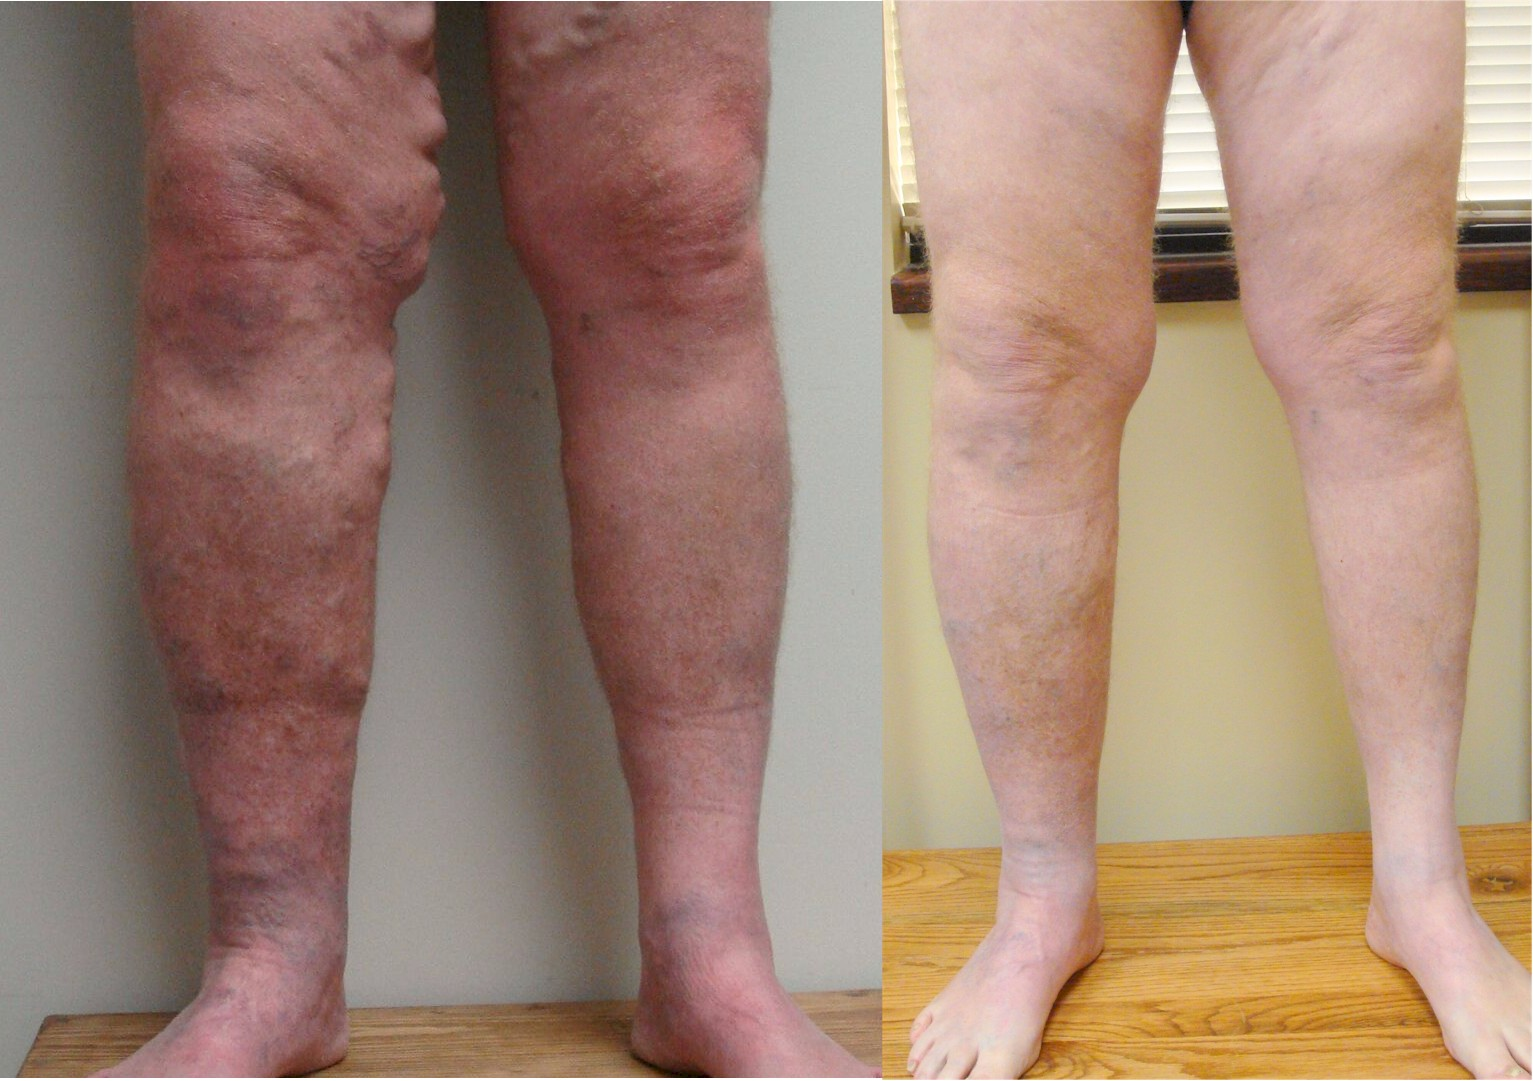 Before and After Picture of Varicose Vein Procedure - Vein Specialists of the Carolinas